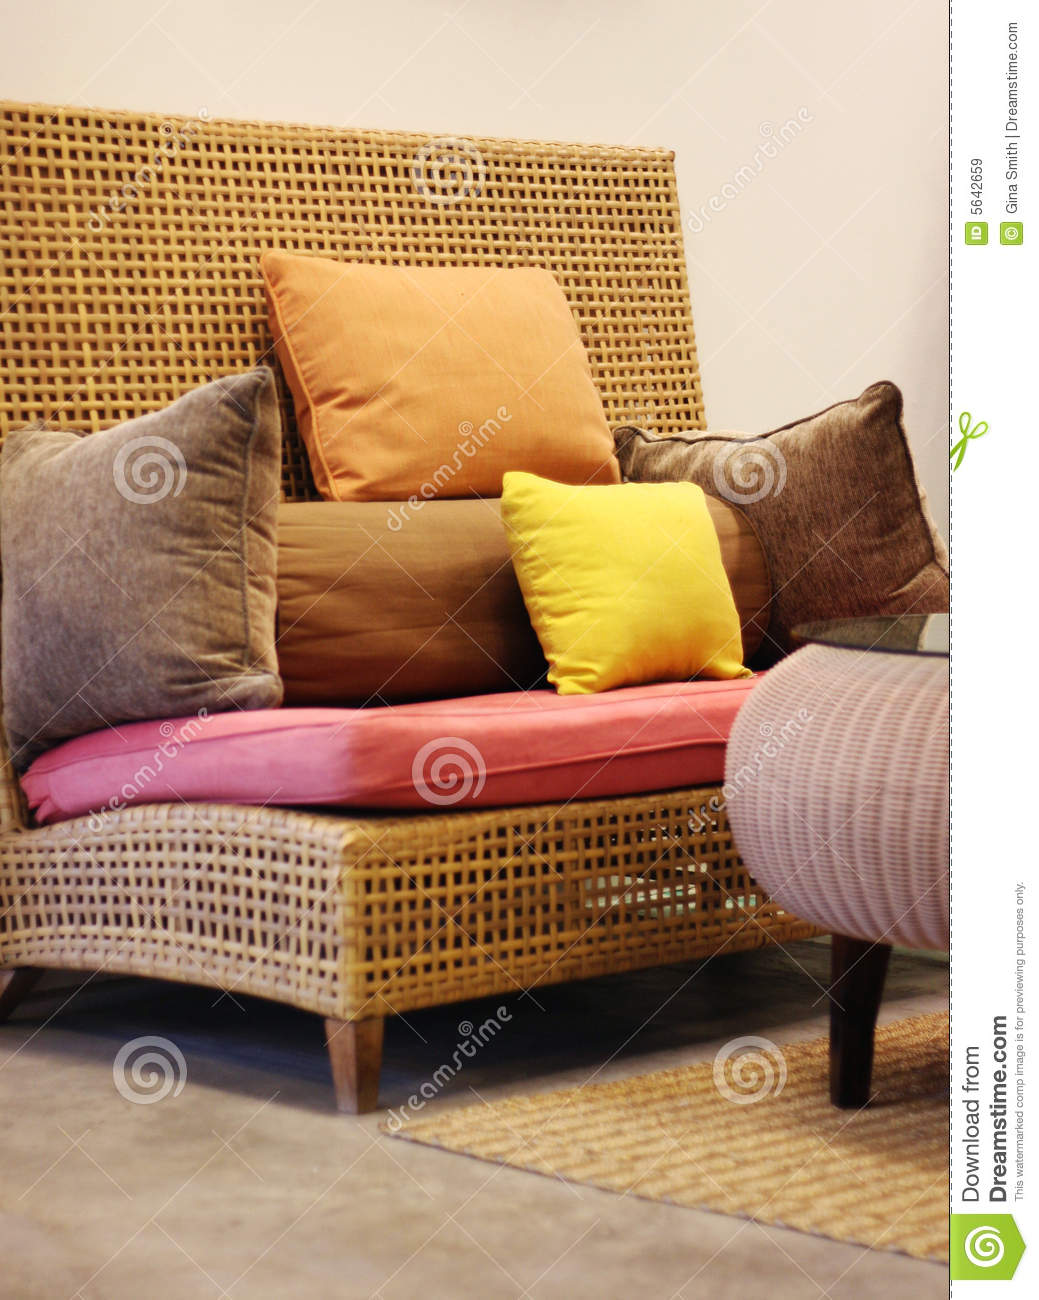 Asian Style Furniture Royalty Free Stock Image